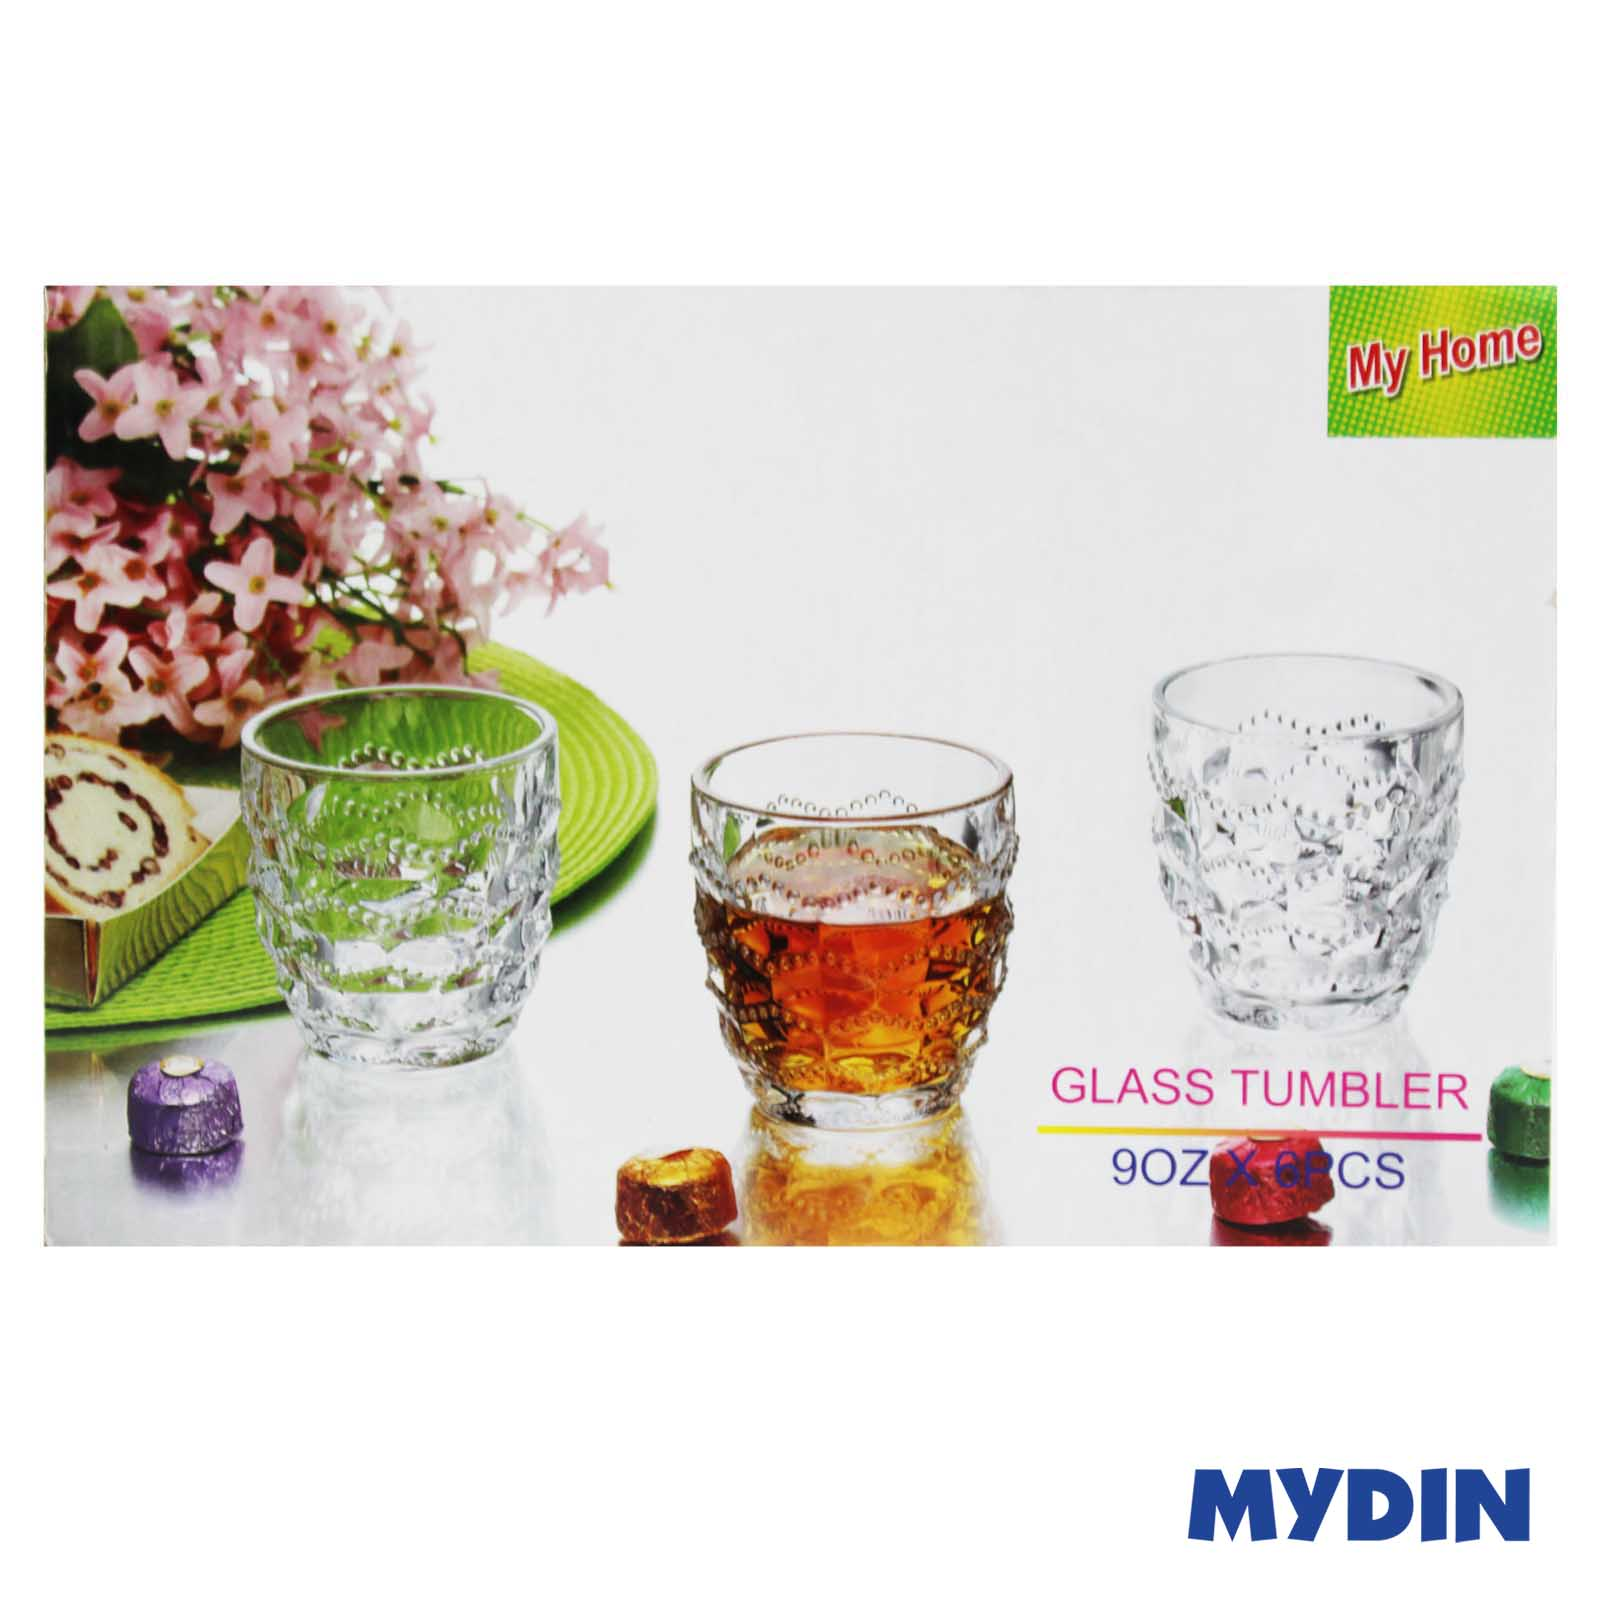 My Home Glass Tumbler Plain (6pcs) WI-GT-6S